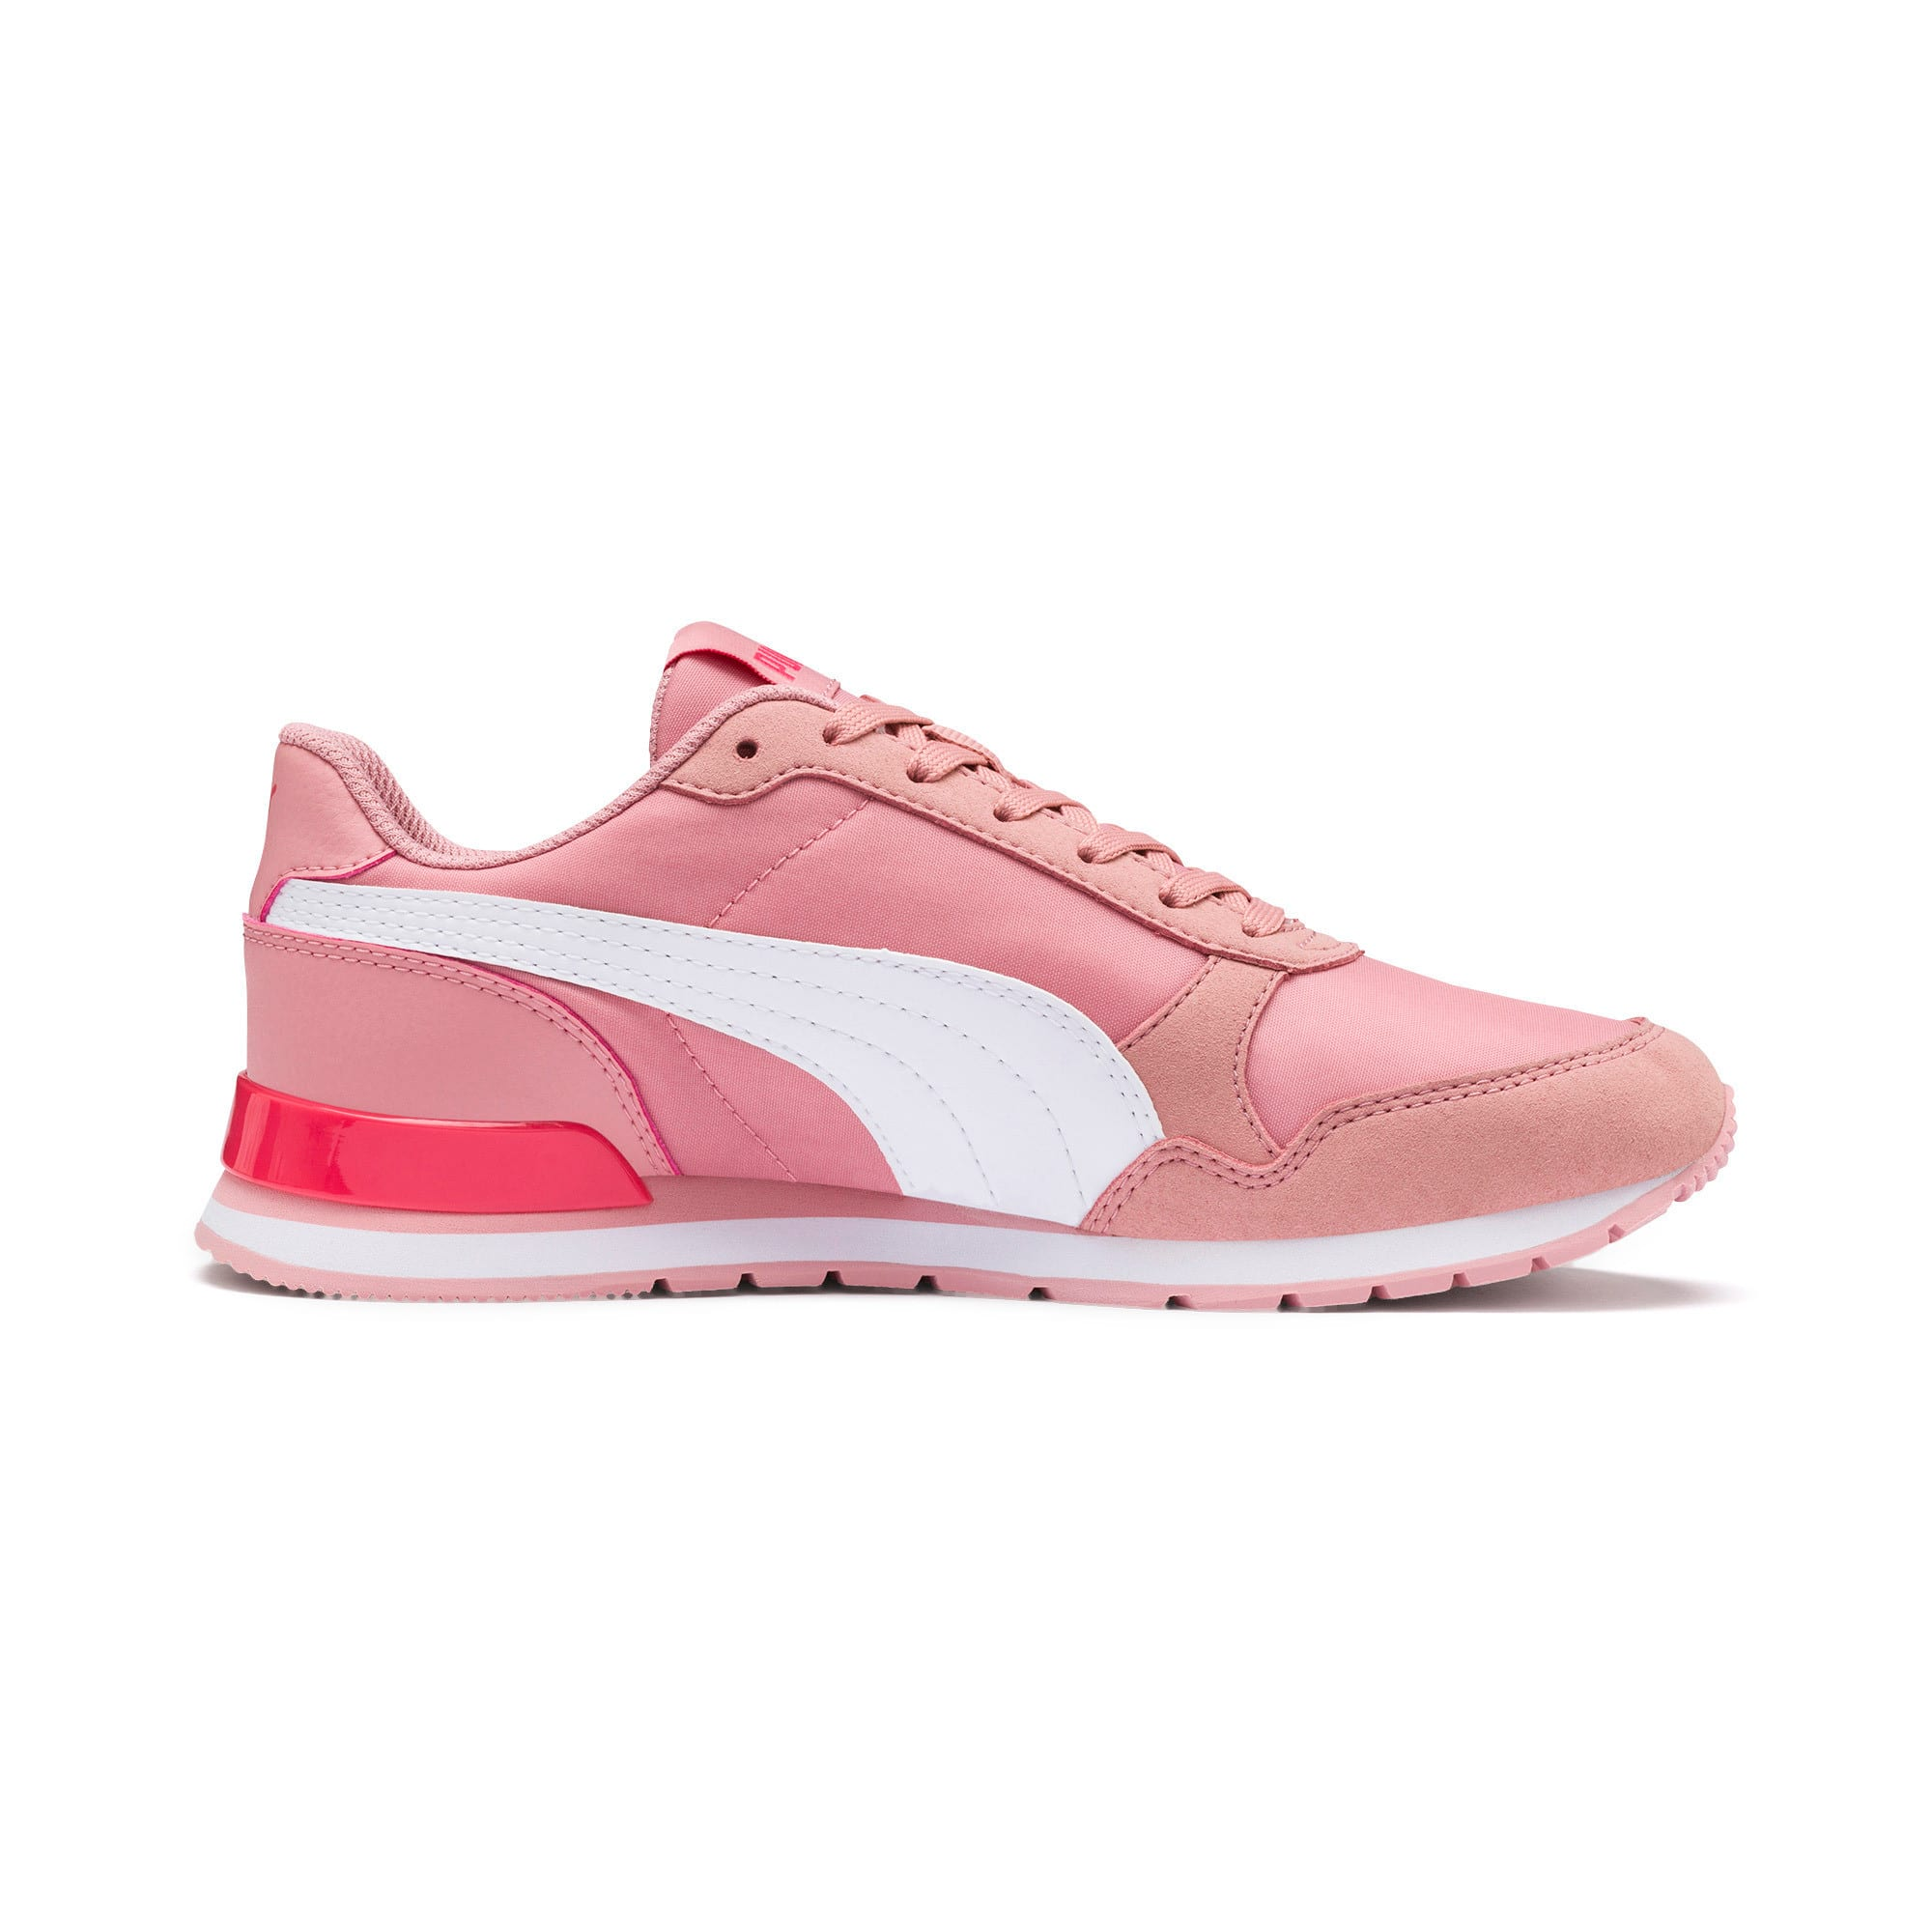 Thumbnail 5 of ST Runner v2 NL Sneakers JR, Bridal Rose-Puma White, medium